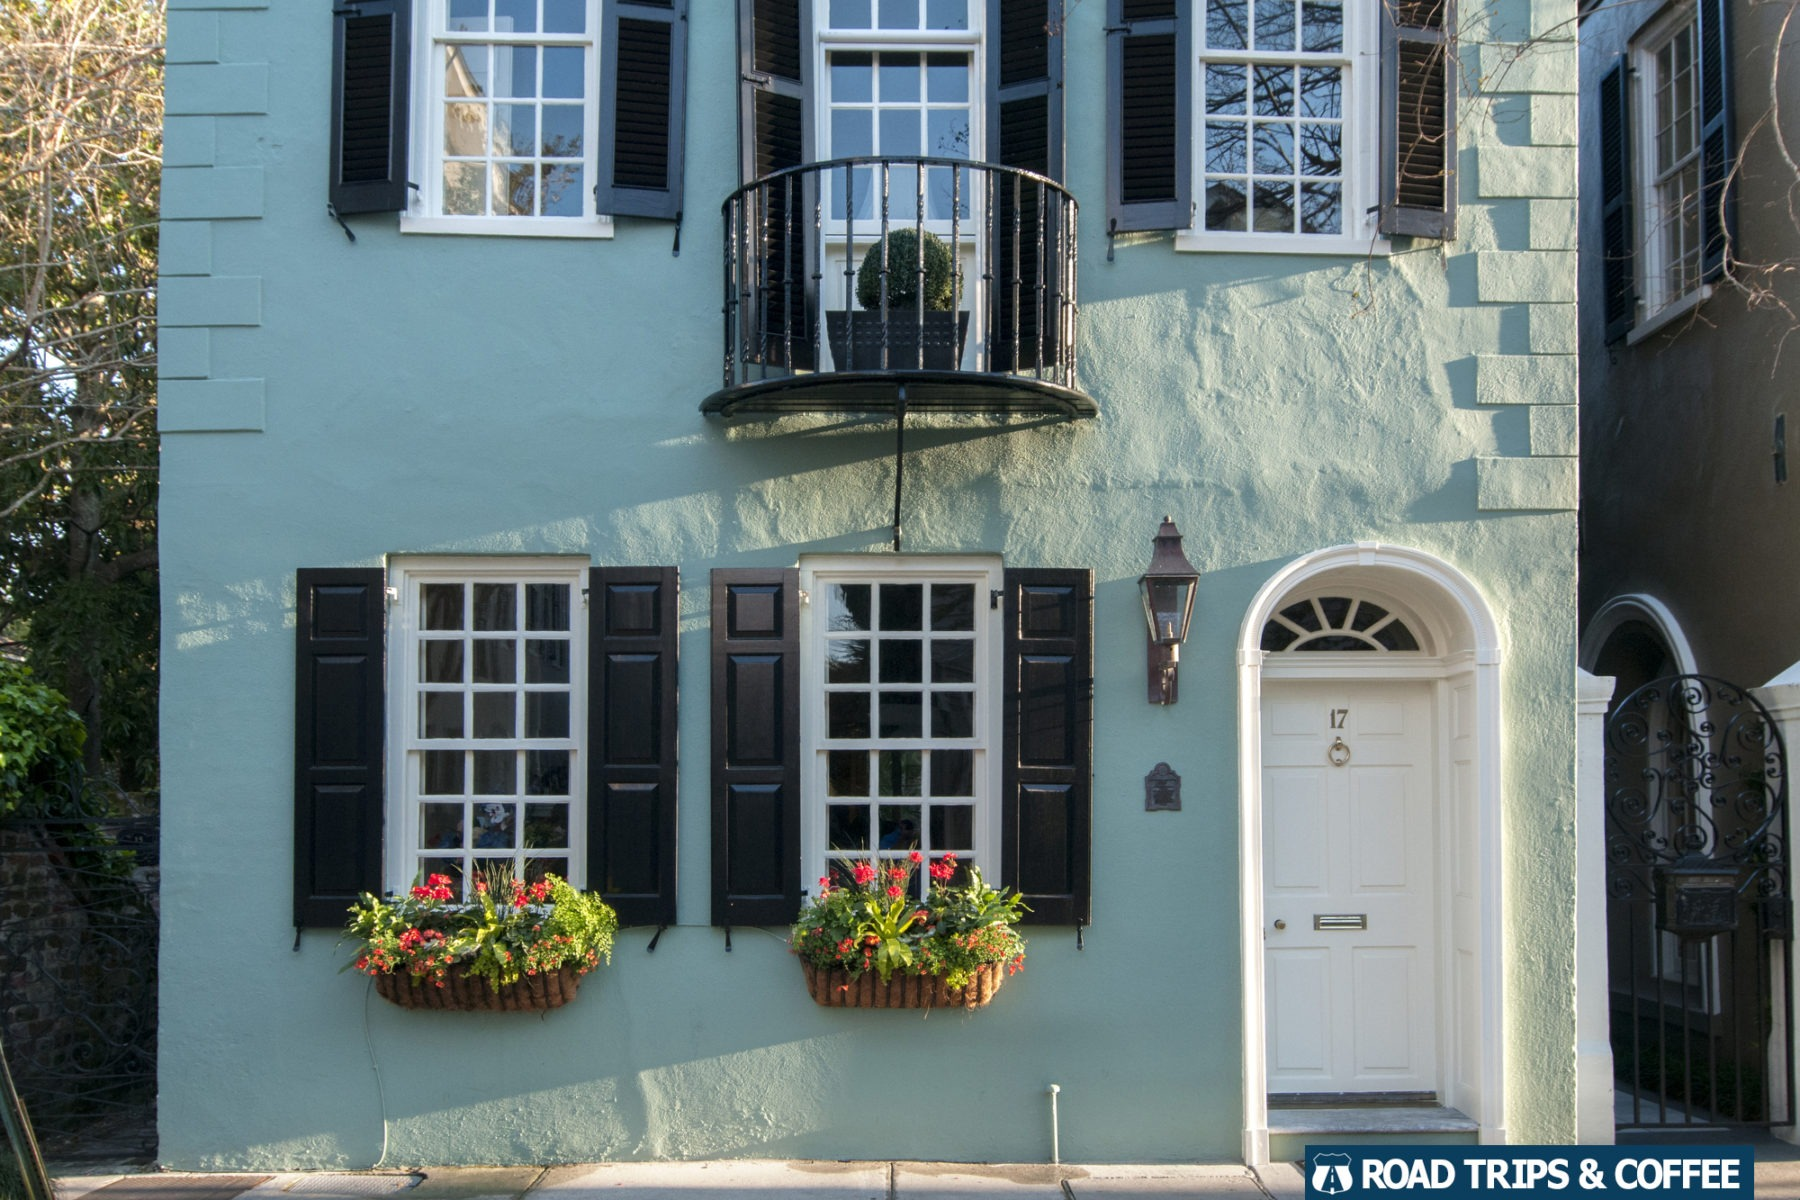 A typical single house with wrought iron balcony and flower boxes in Charleston, South Carolina